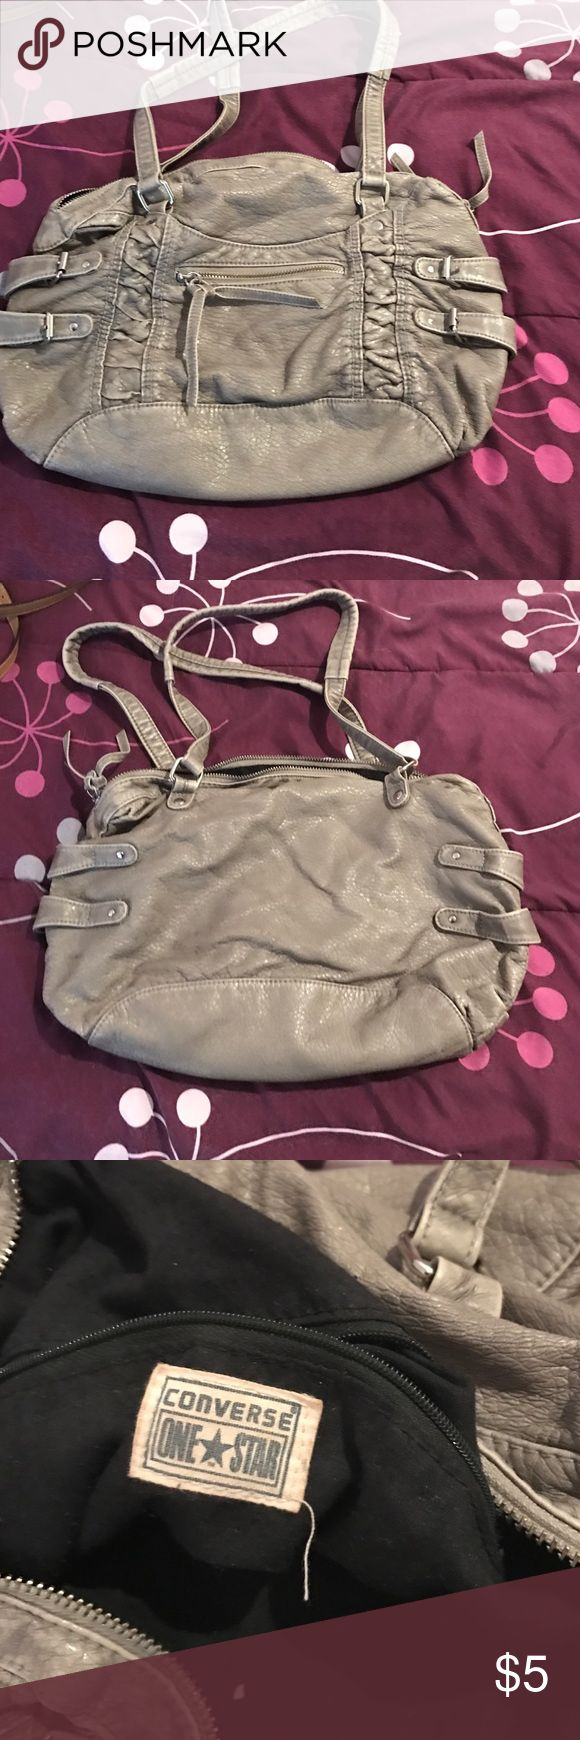 Converse One Star purse Great gently used small-medium sized bag by Converse One Star.  In good used condition. Color is hard to describe but I'd say it's like a pewter beige-y gray Converse Bags Shoulder Bags